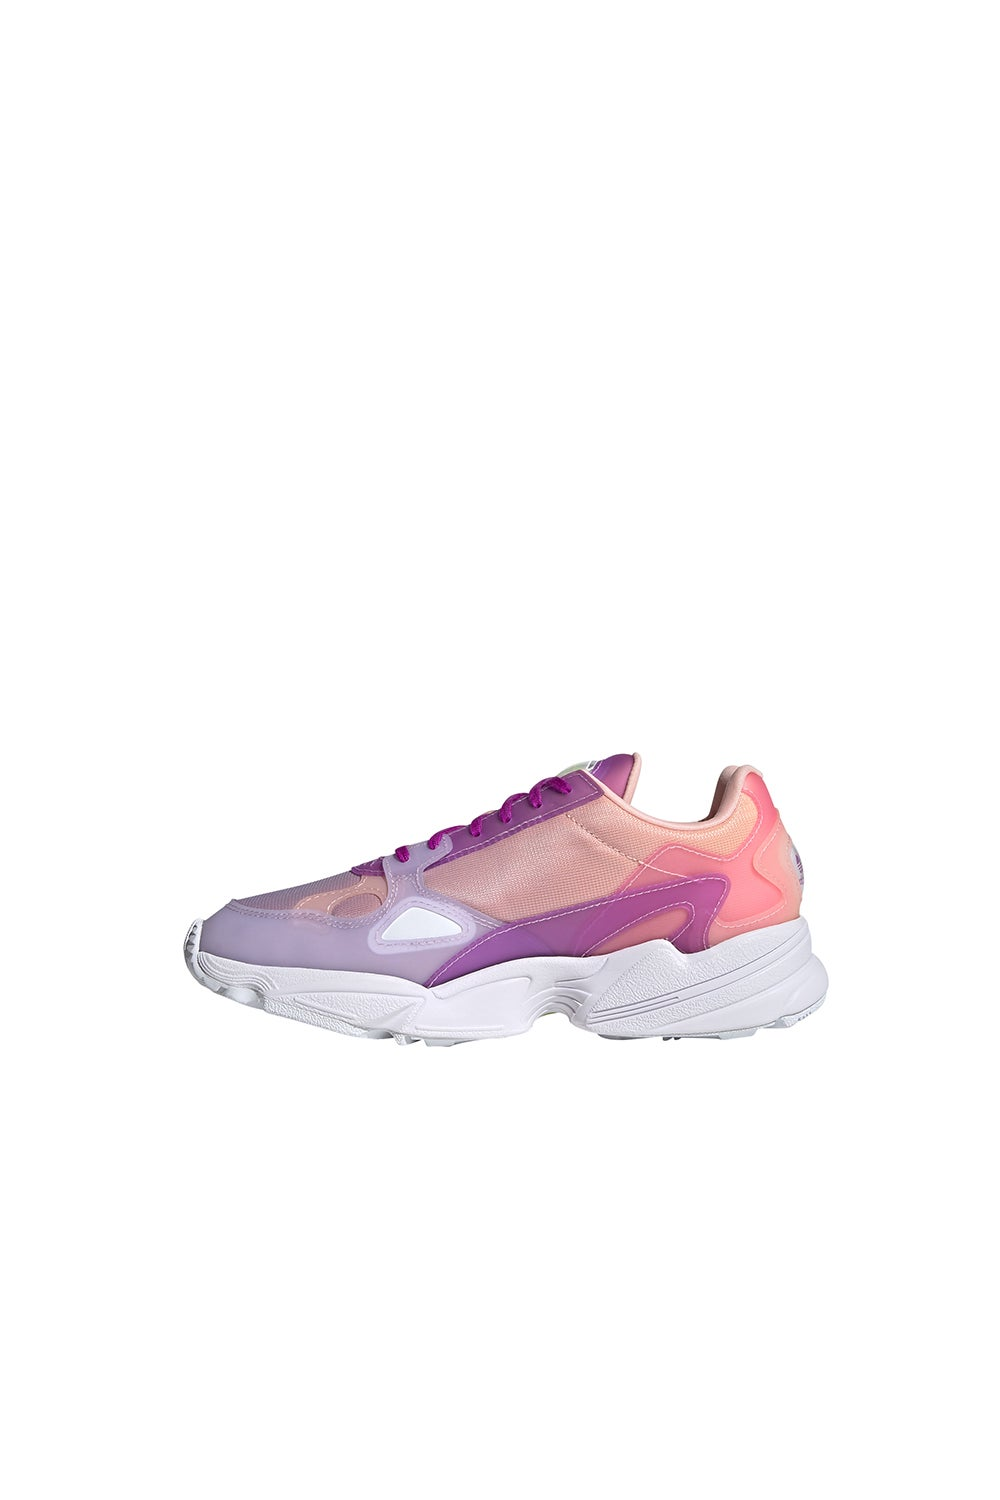 adidas Falcon Shoes W Bliss Purple